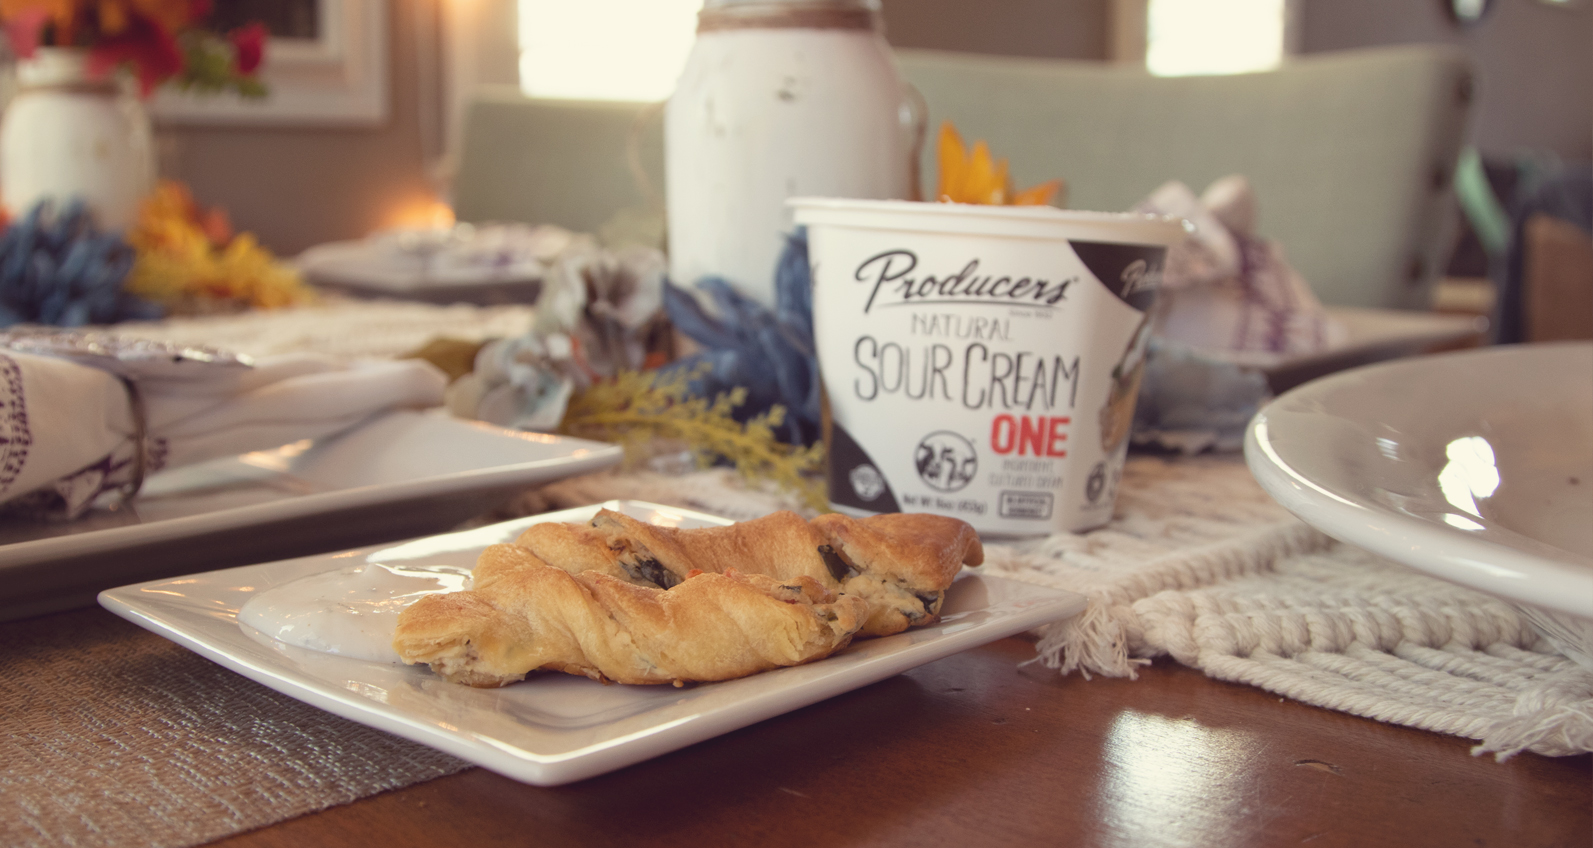 Holiday Breadsticks with Producers Natural Sour Cream on a decorated table.